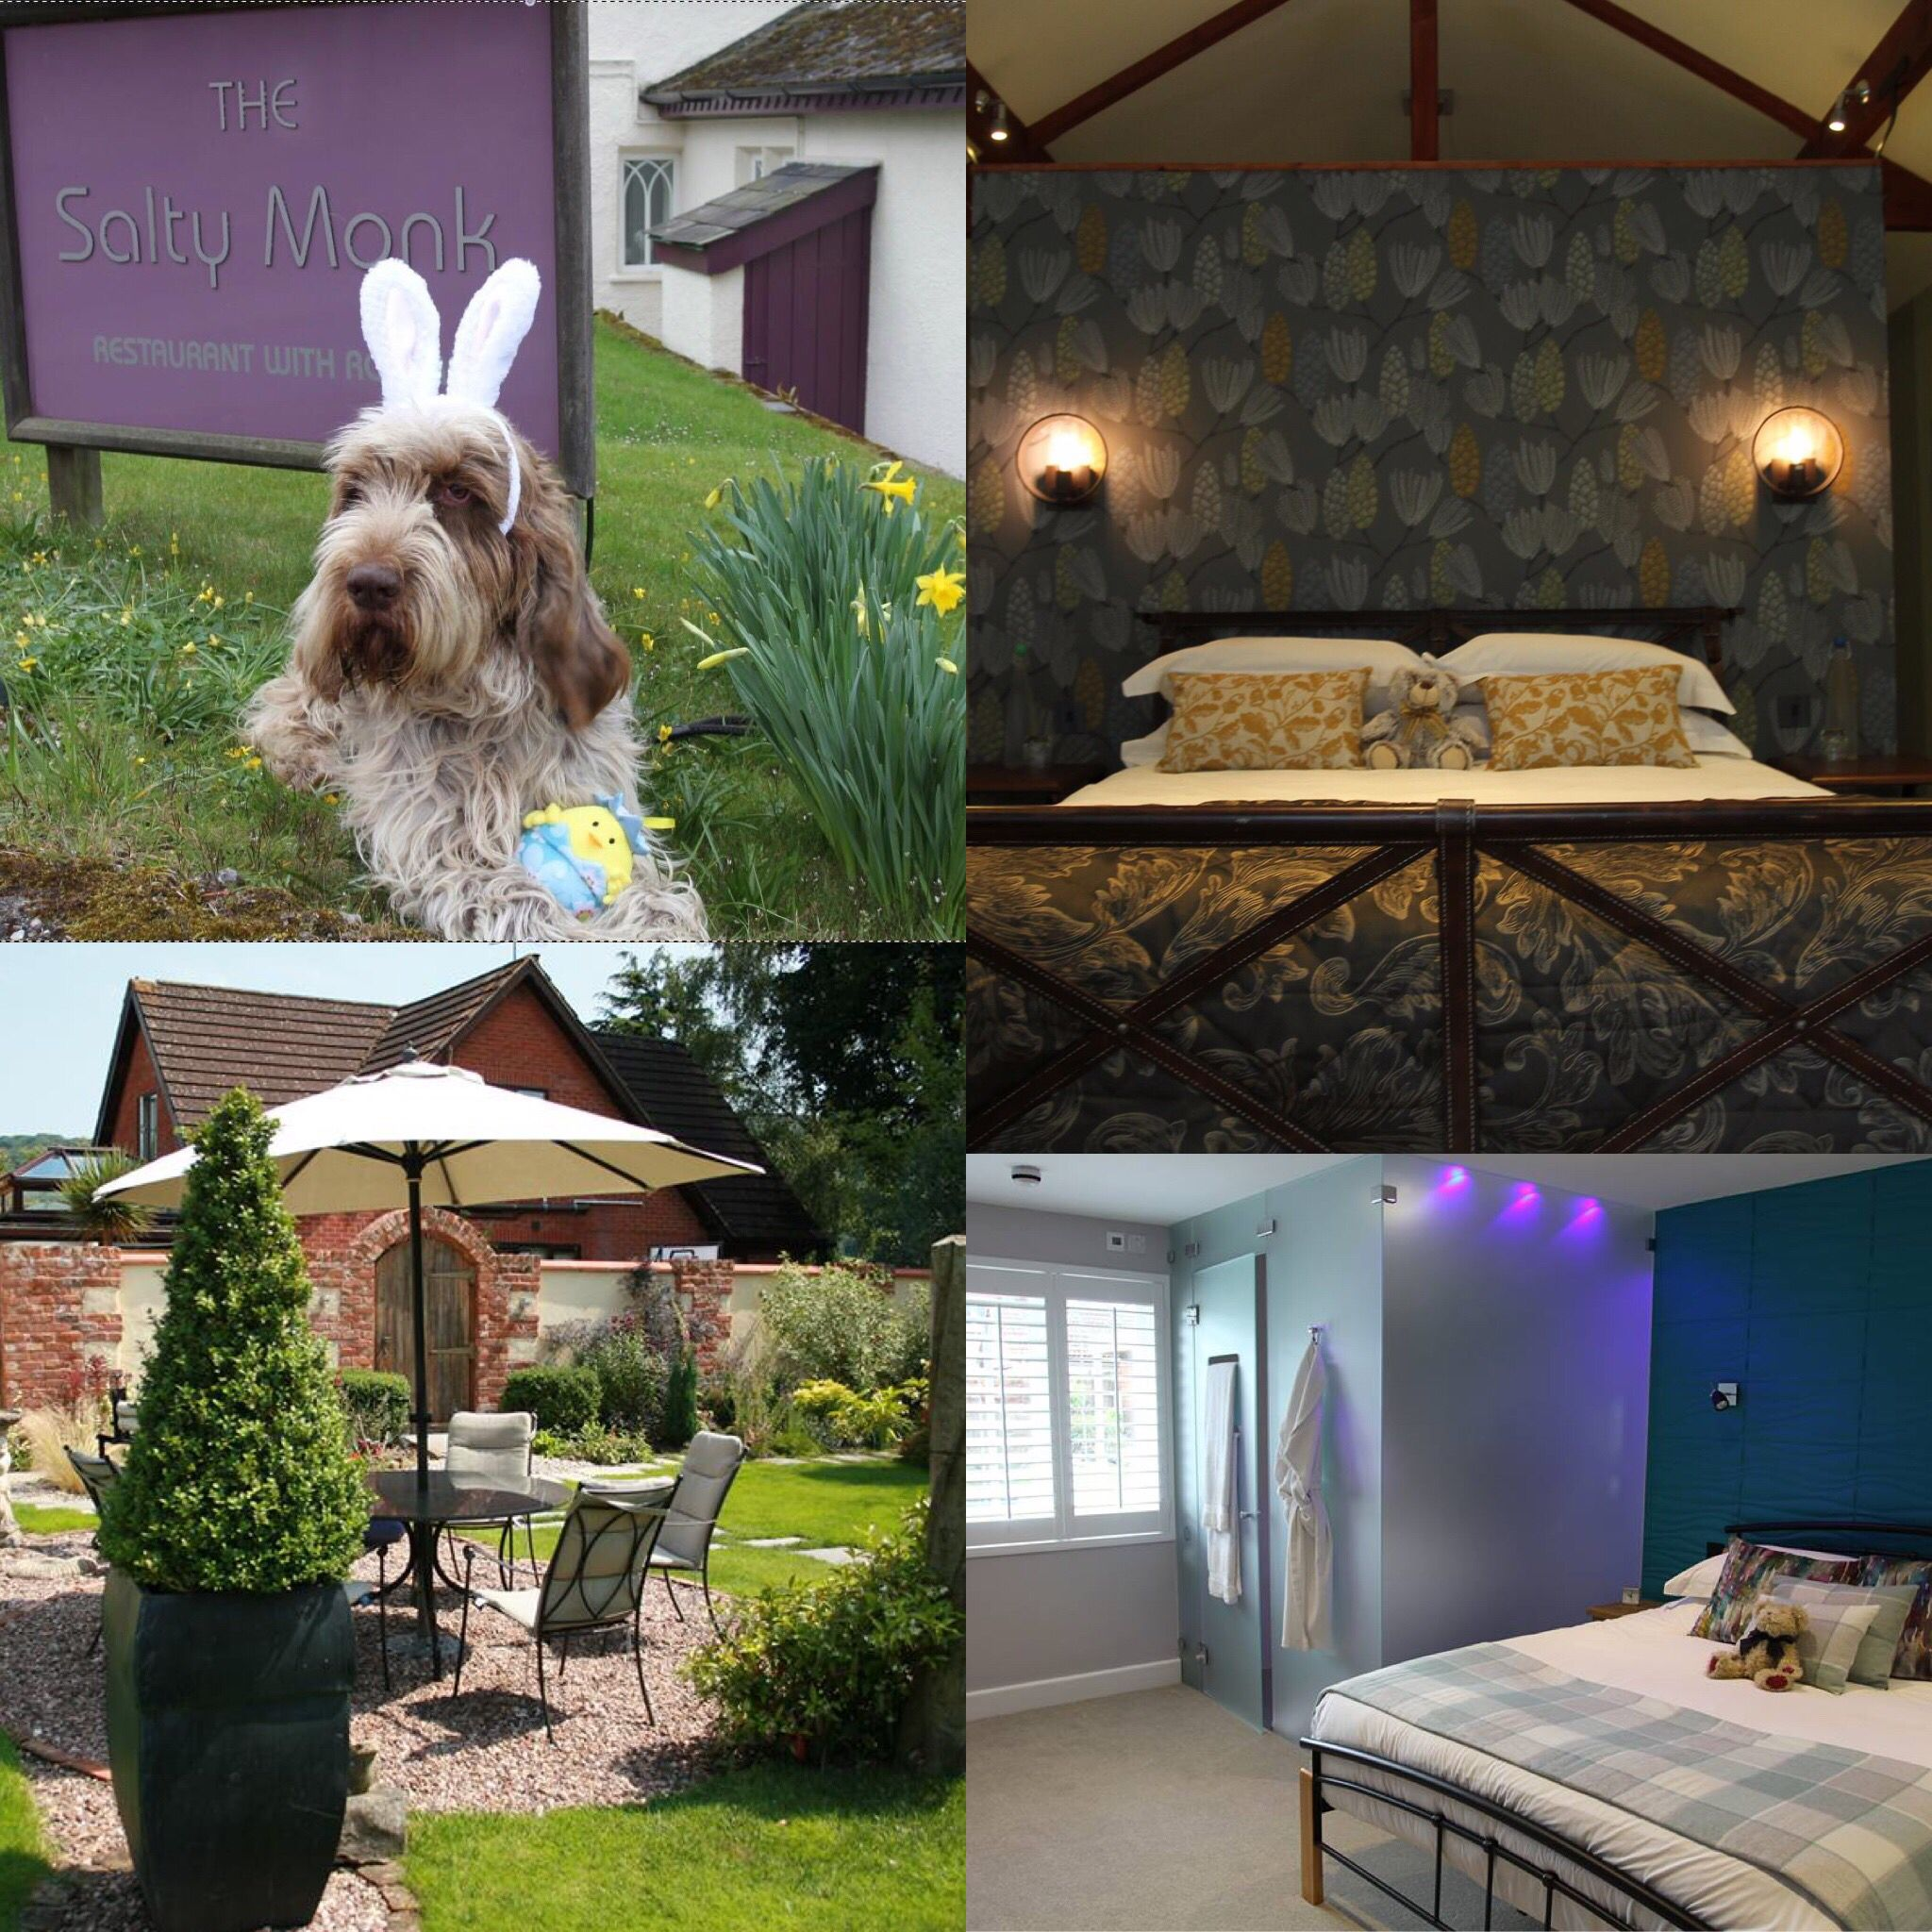 Dog Friendly The Salty Monk Bed and Breakfast Sidmouth